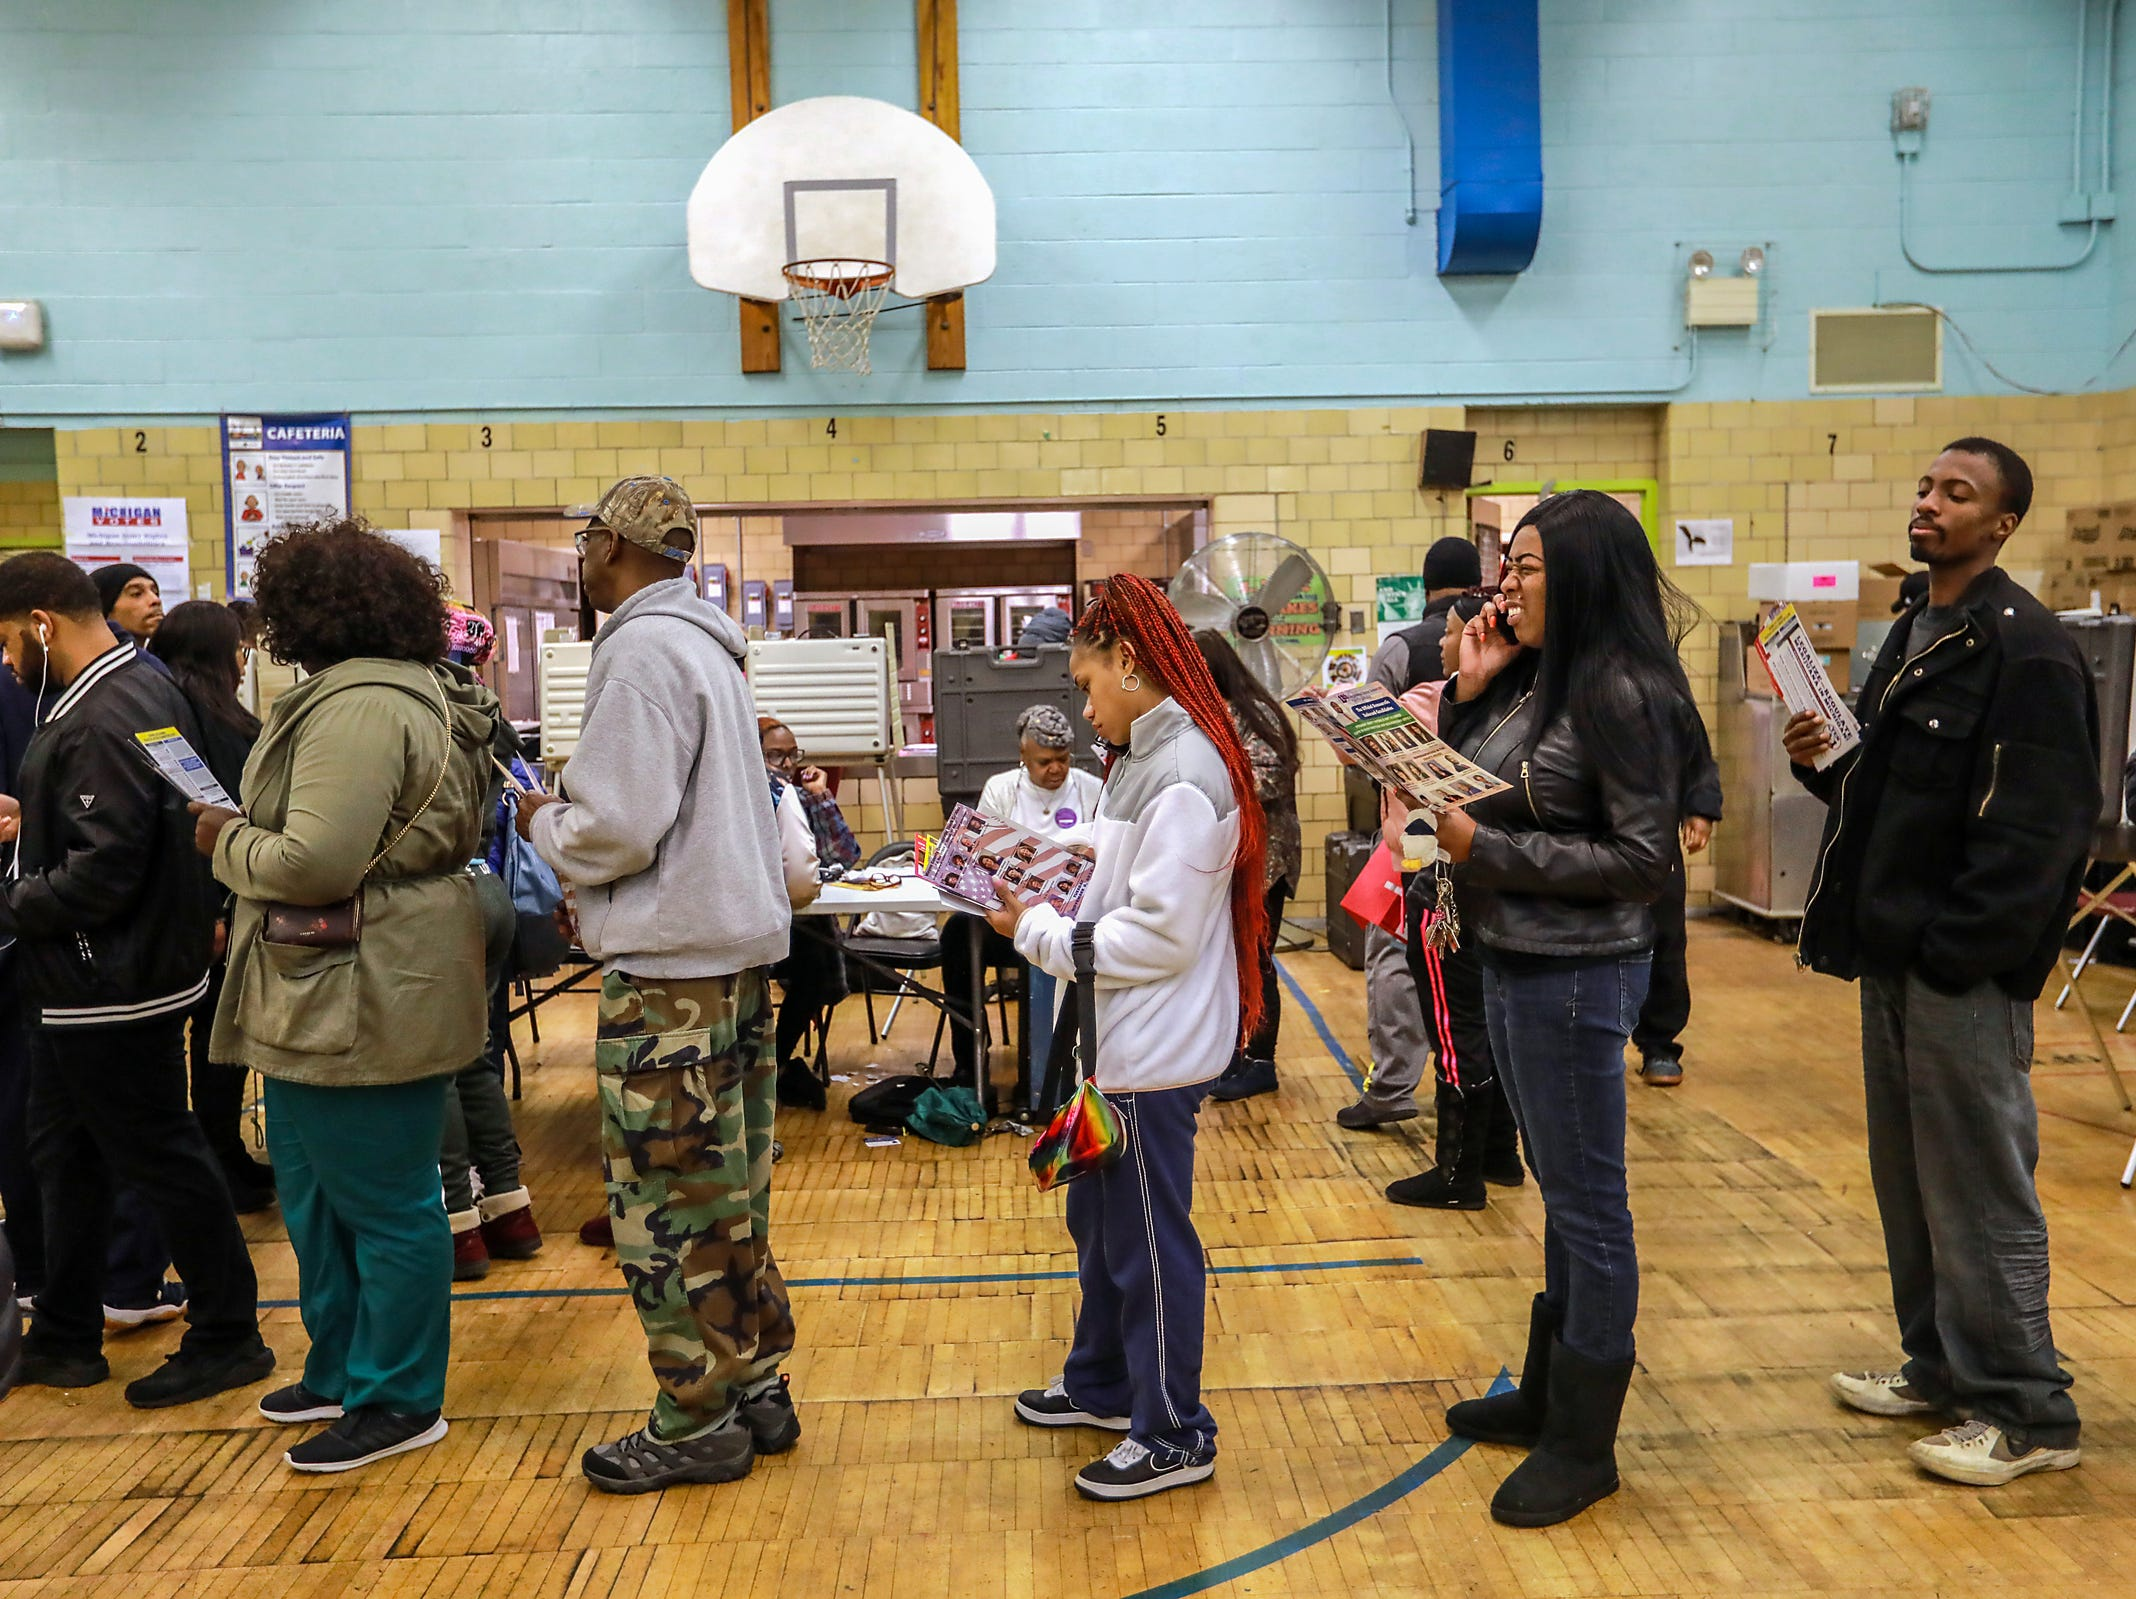 Voters stand in line waiting to cast their ballot at Bow Elementary School  where multiple precincts are located for the midterm elections in Detroit on Tuesday, Nov. 6, 2018.